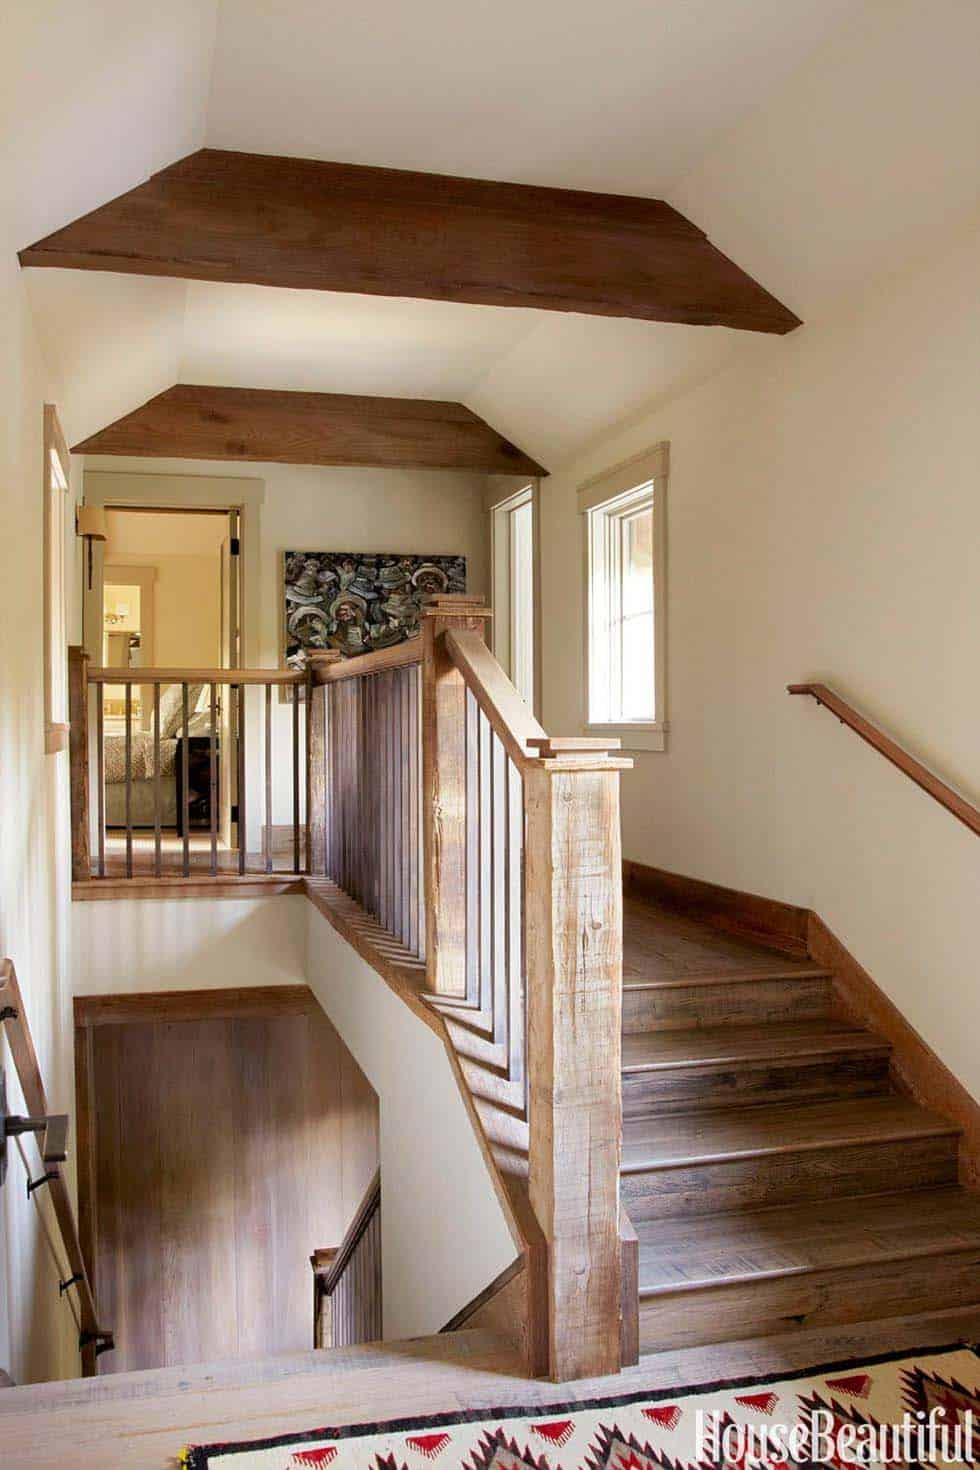 Rustic Mountian Stair Railings: Mountain Getaway With Rustic Yet Refined Style In